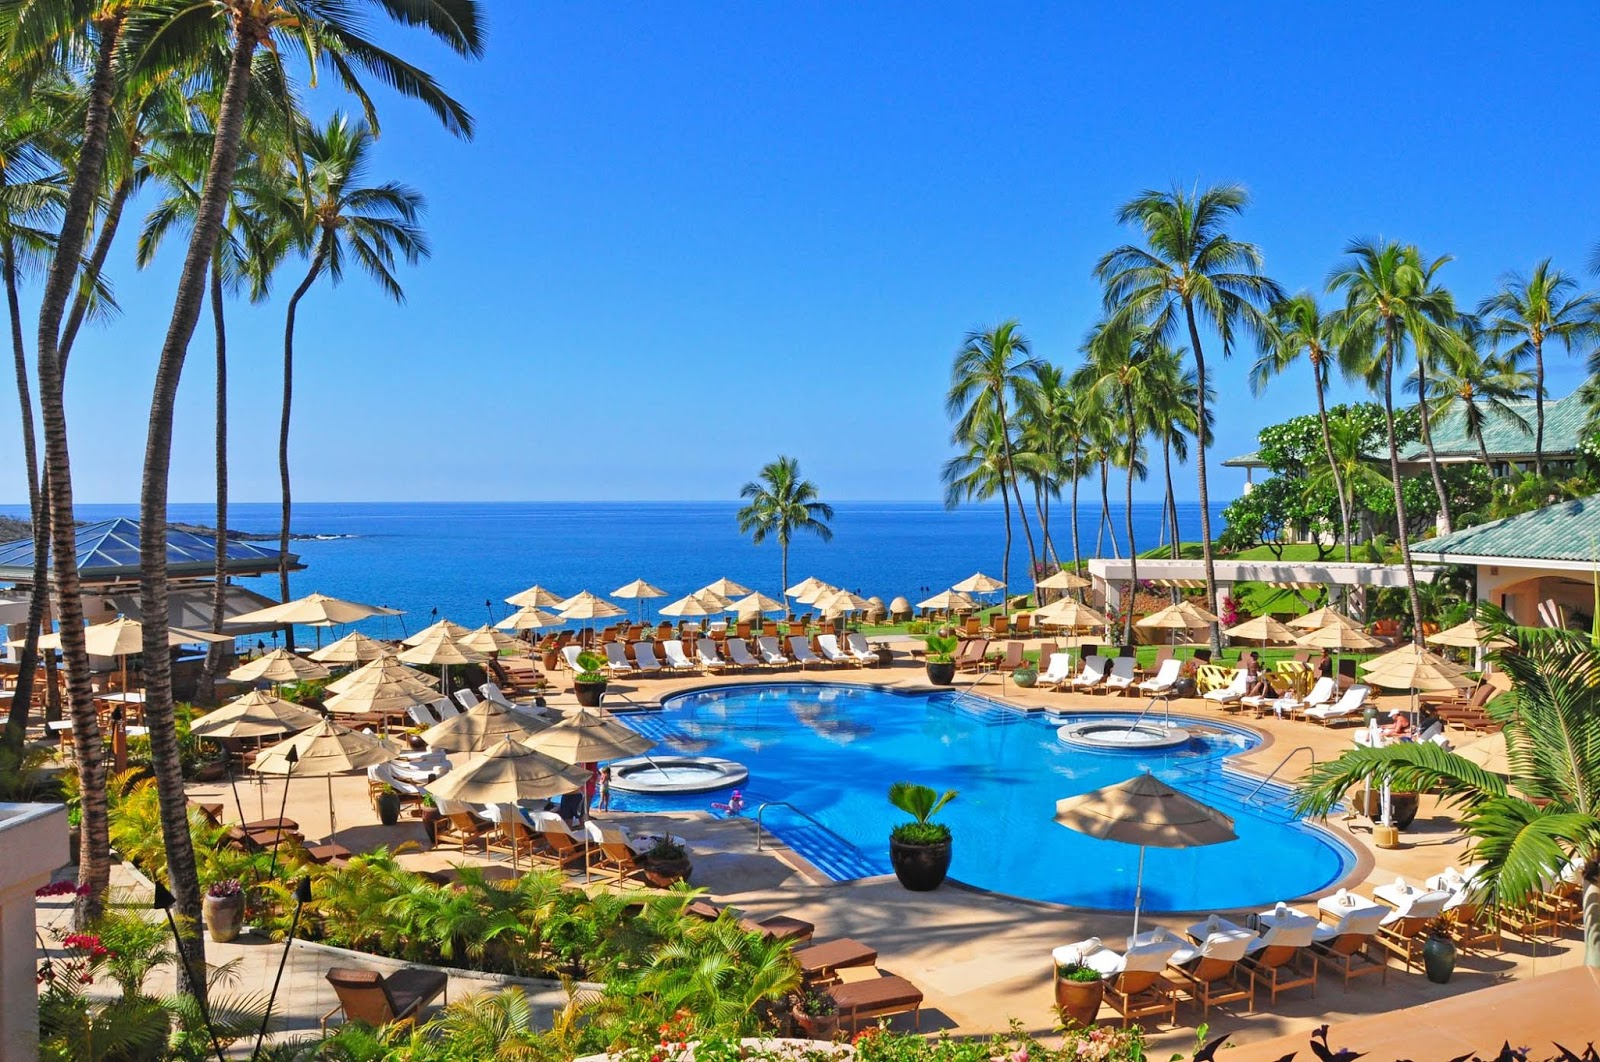 All Inclusive Resorts In Hawaii You Must Visit Bms Bachelor Of Management Studies Portal